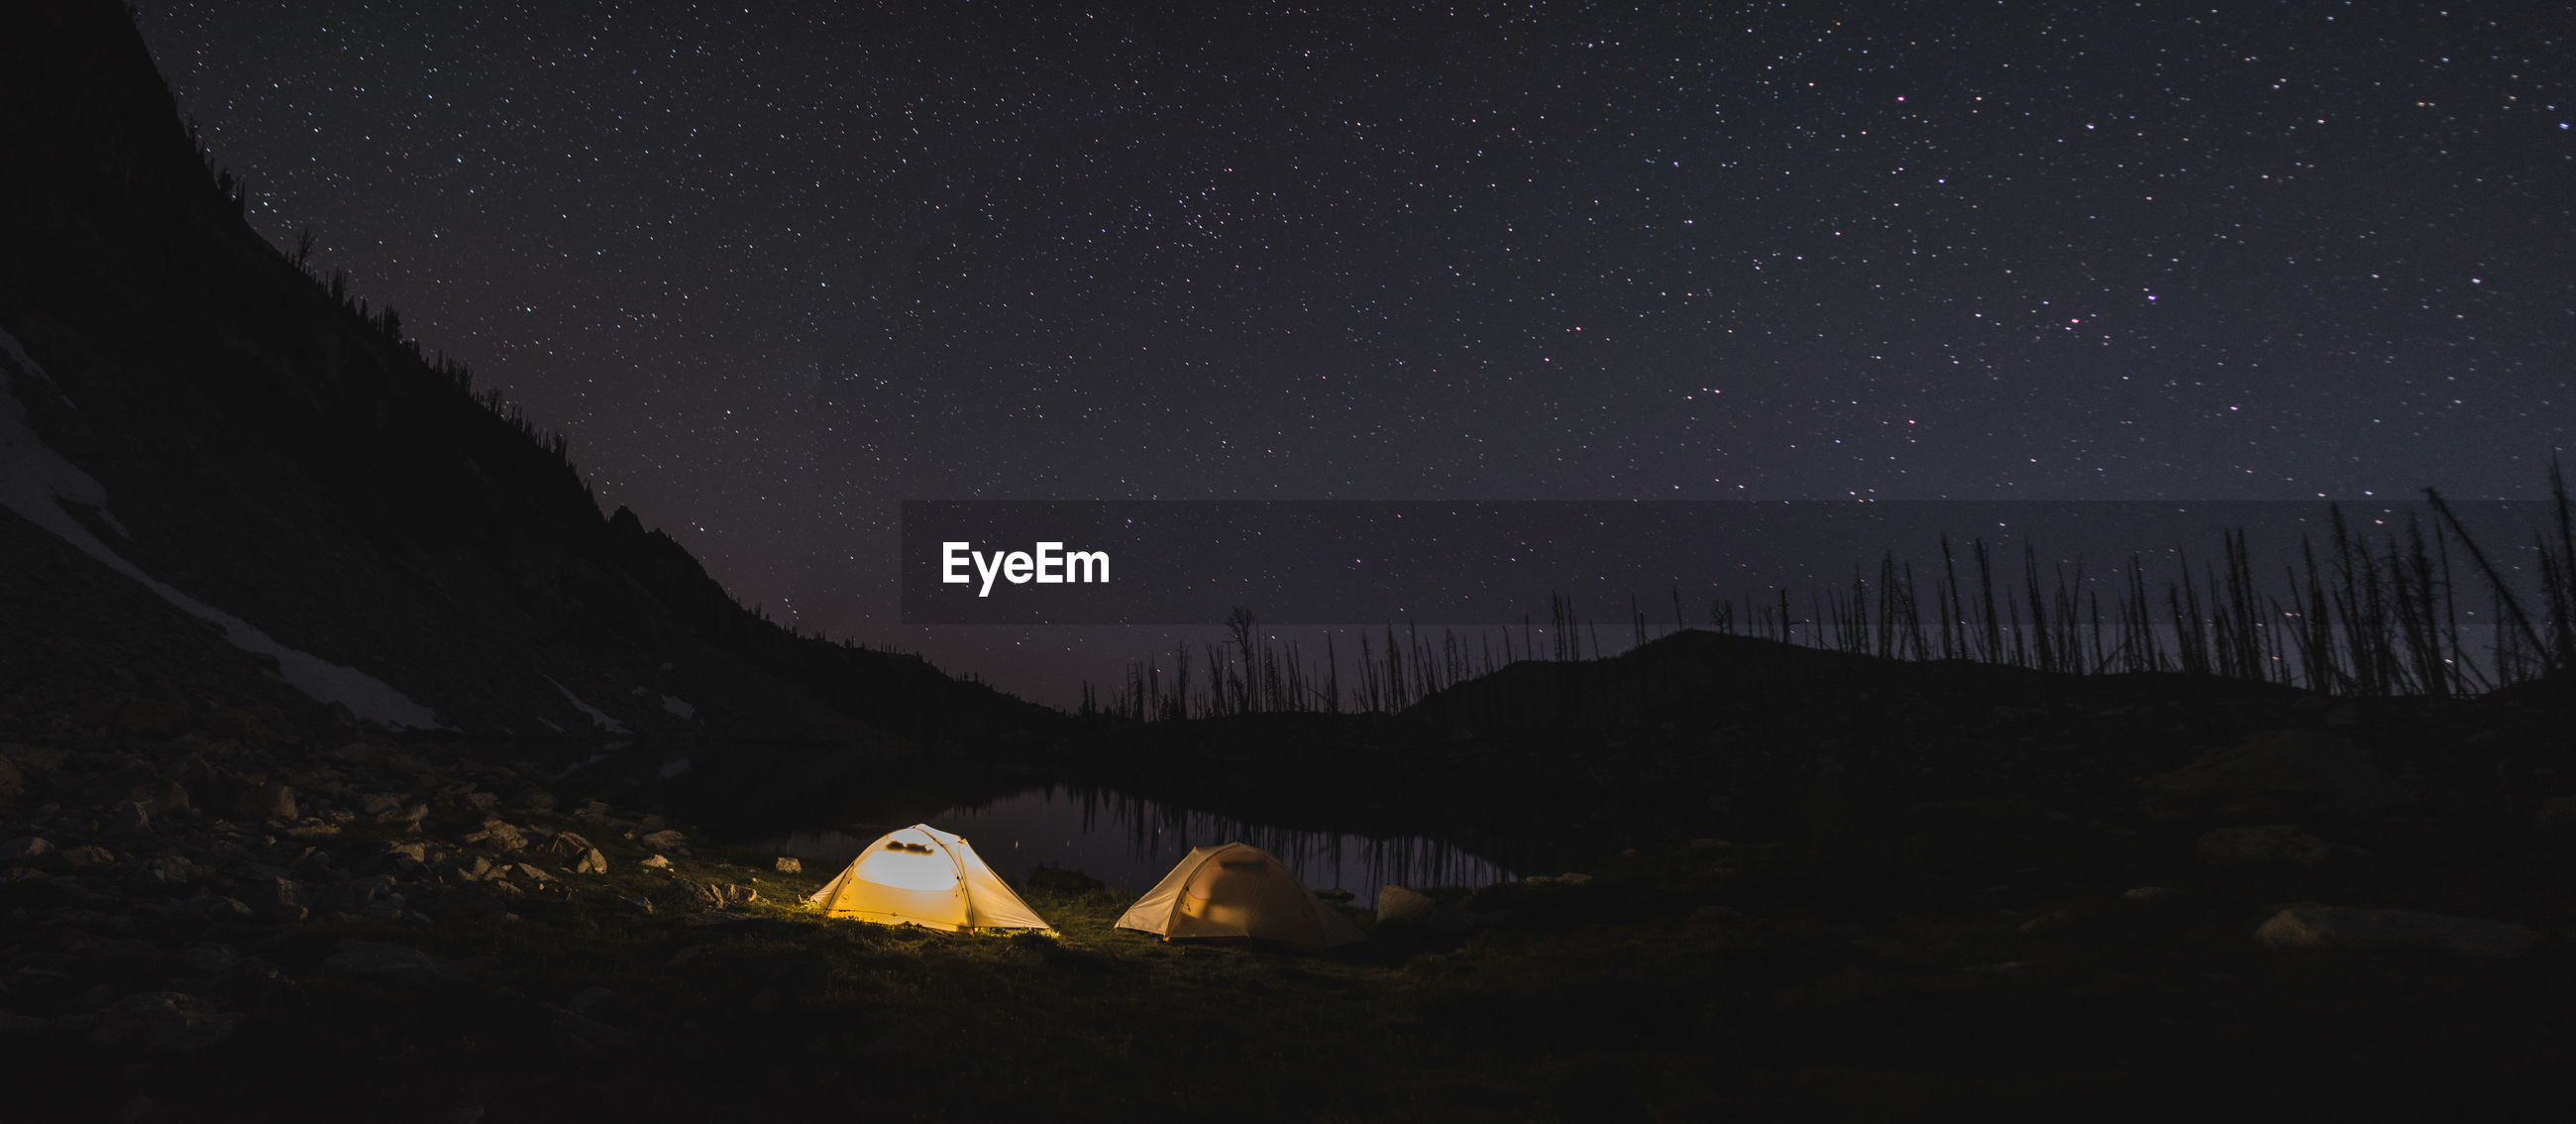 Illuminated tents on land against star field at night